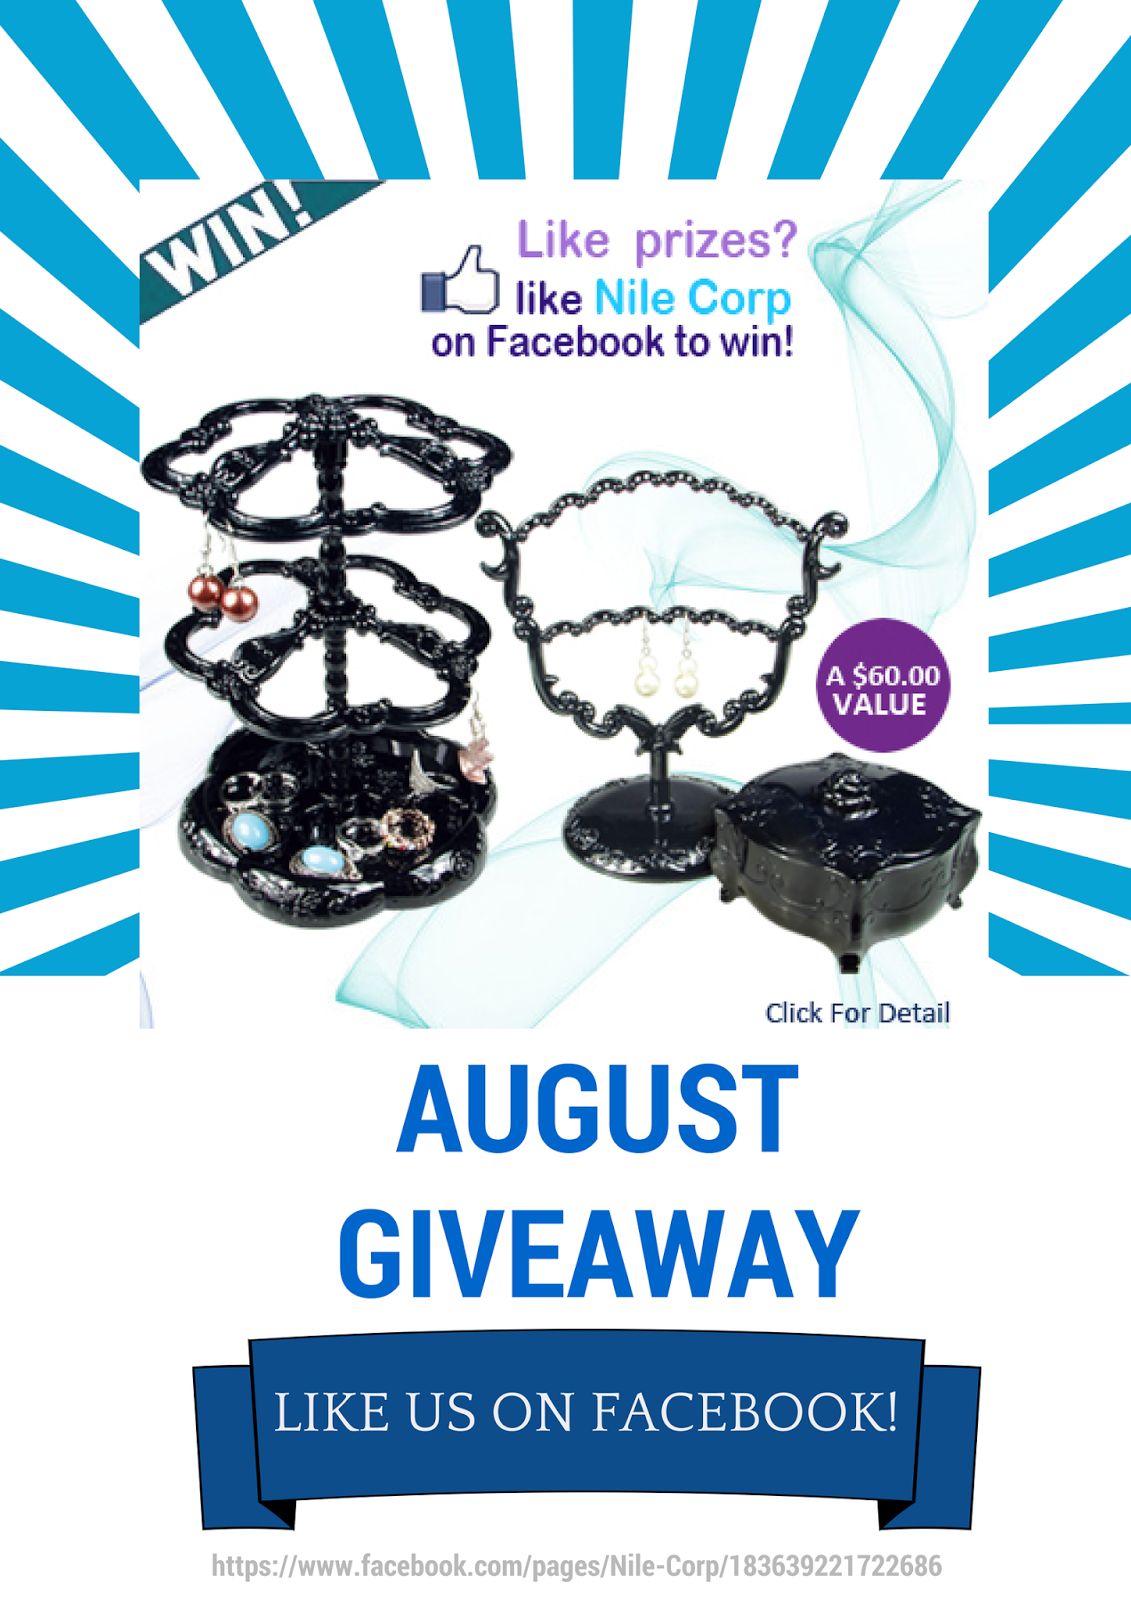 August Give Away